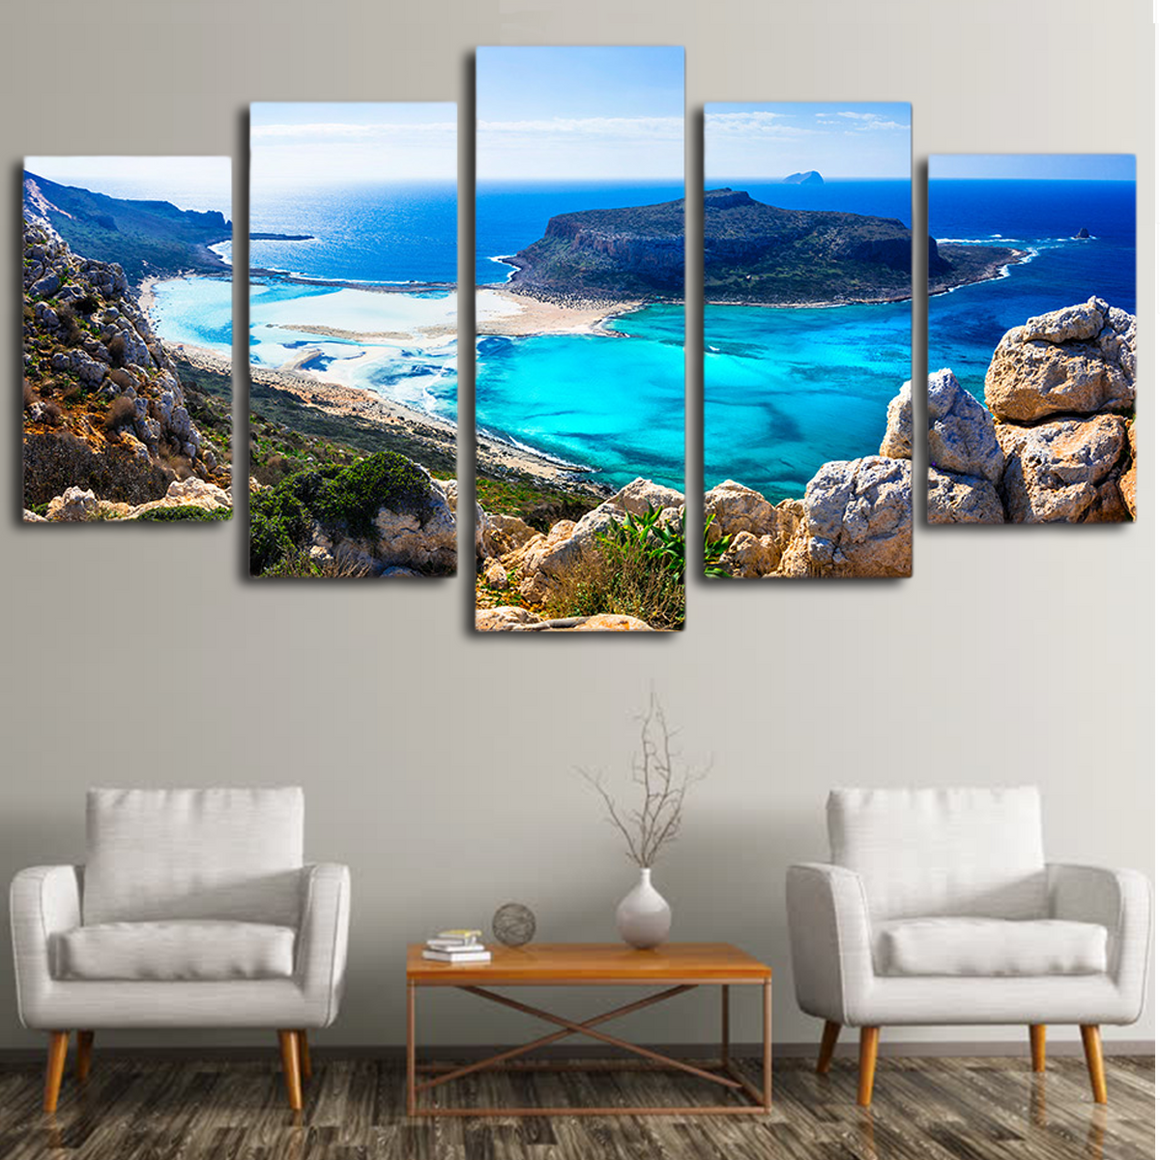 Blue Sea Beach Island Wall Art